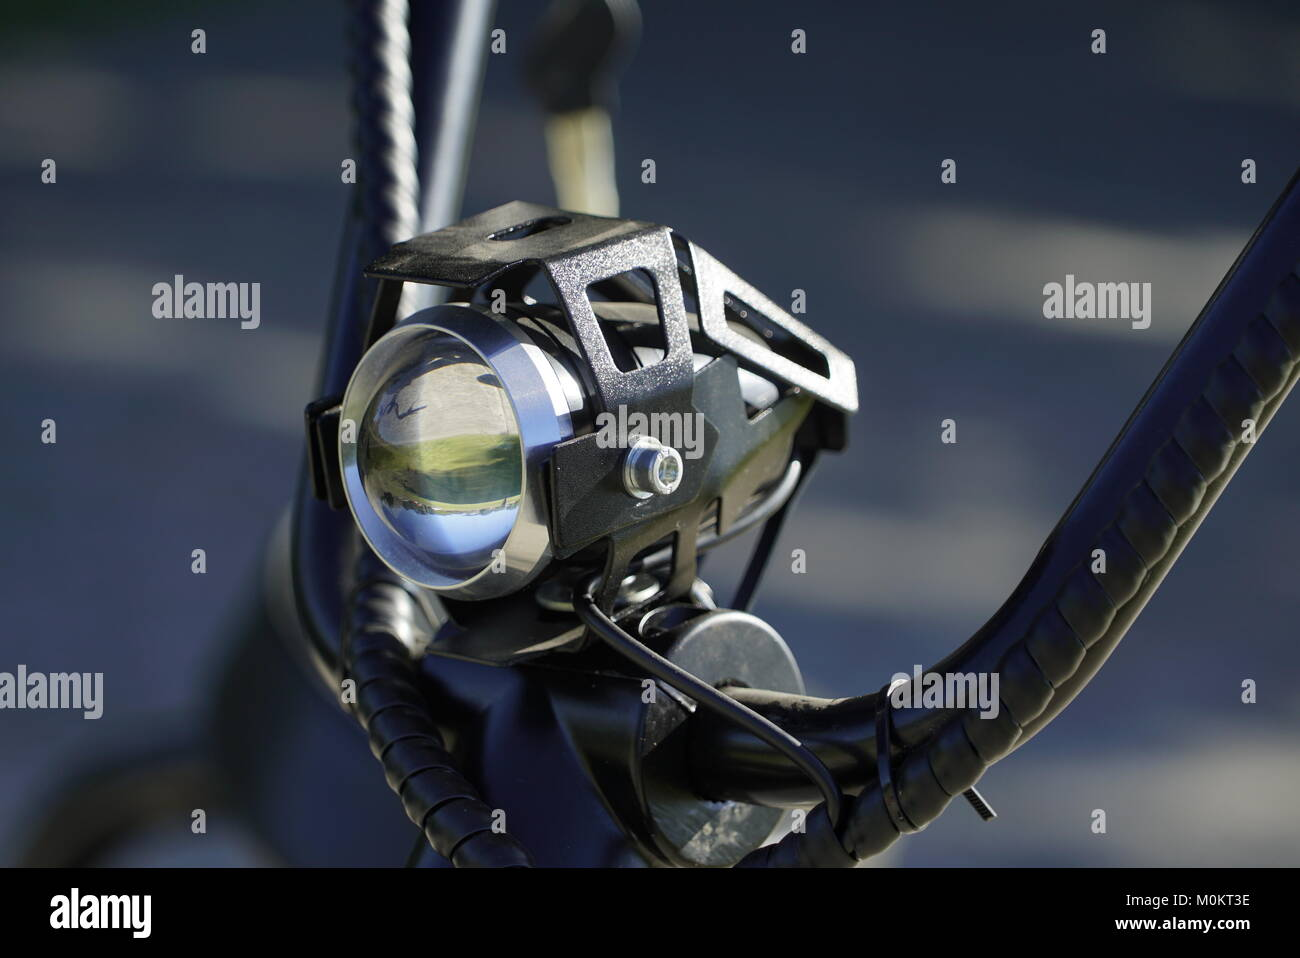 Closeup of Motorcycle handles with low depth of field - Stock Image